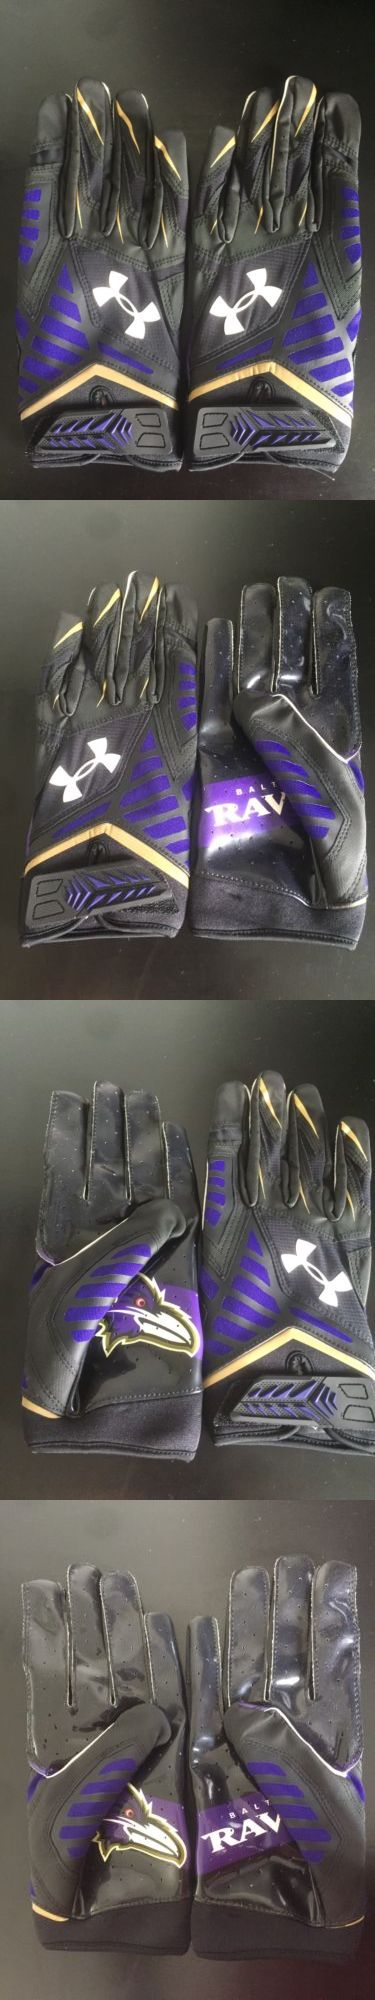 Gloves 159114: Under Armour Baltimore Ravens Nfl Nitro Warp Football Receiver Gloves Adult Xl -> BUY IT NOW ONLY: $30 on eBay!